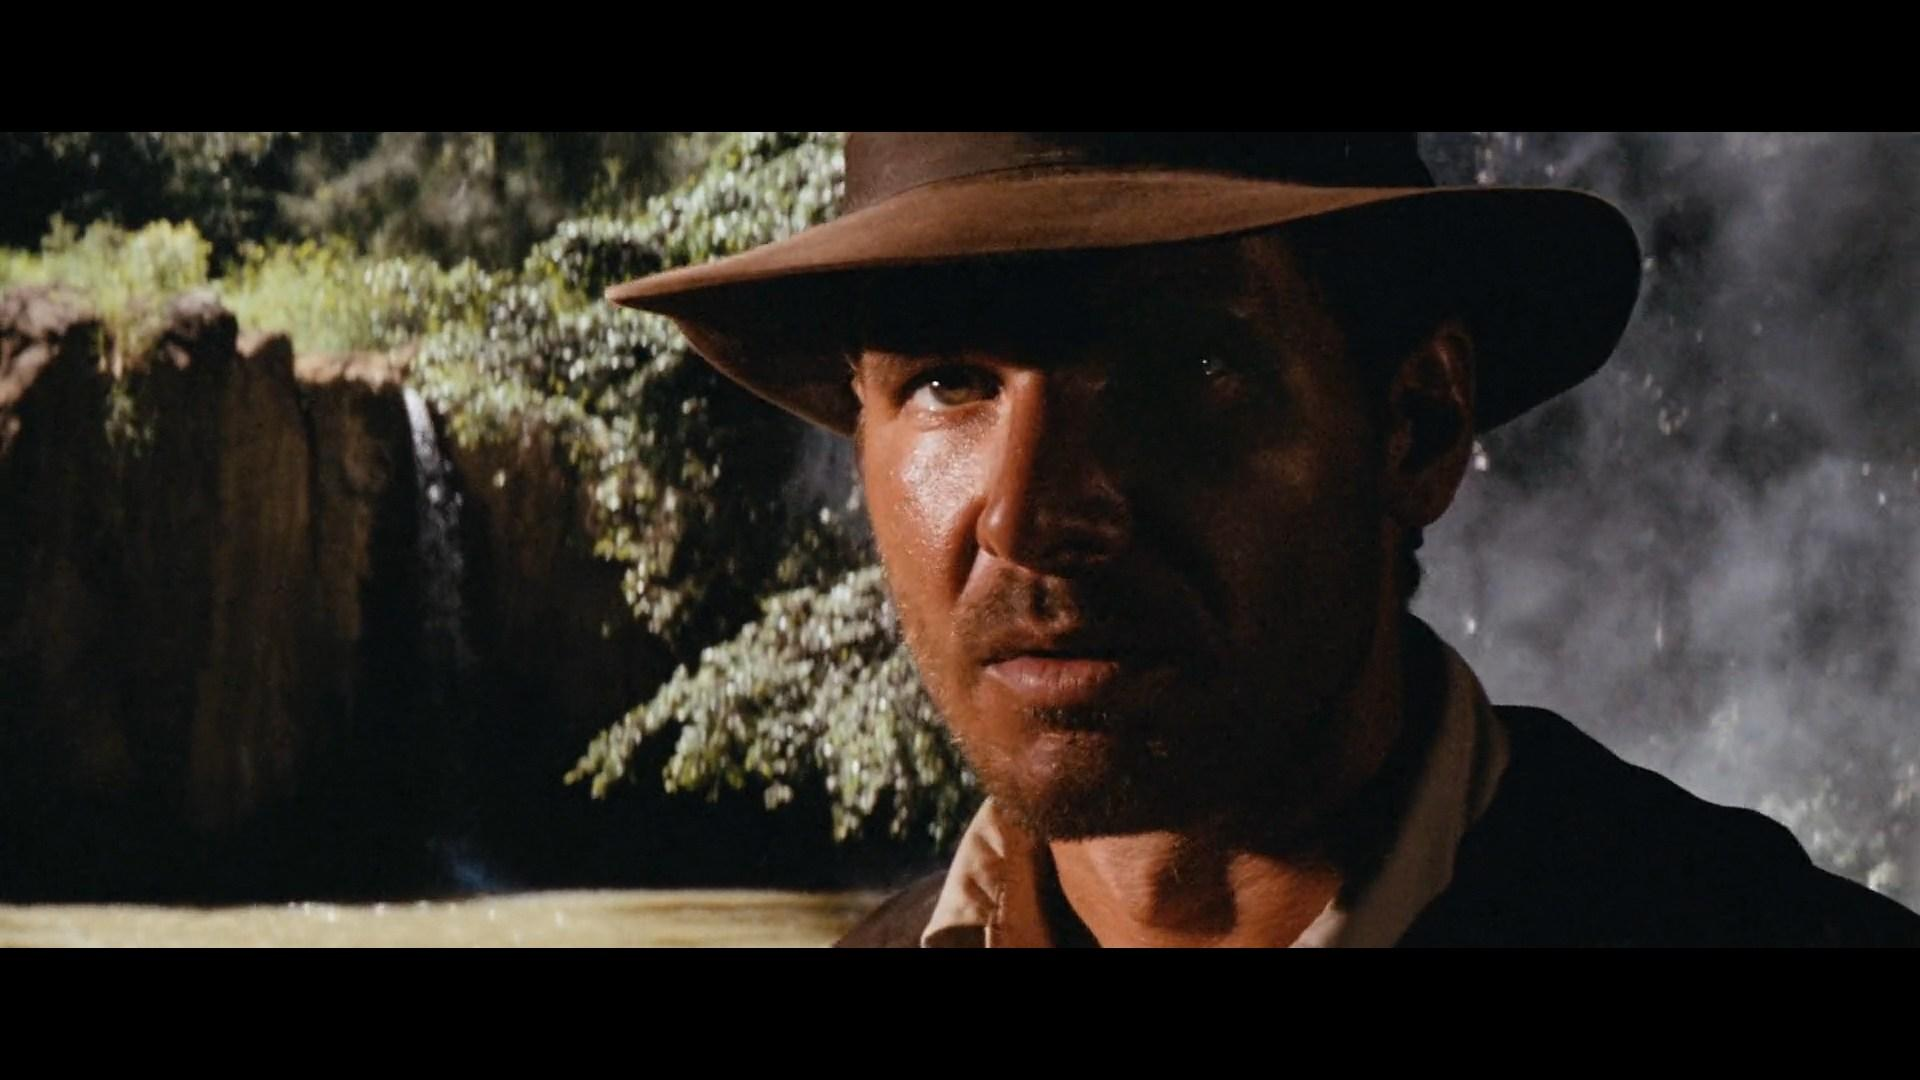 Raiders of the Lost Ark - Cutting in Camera | VashiVisuals Blog